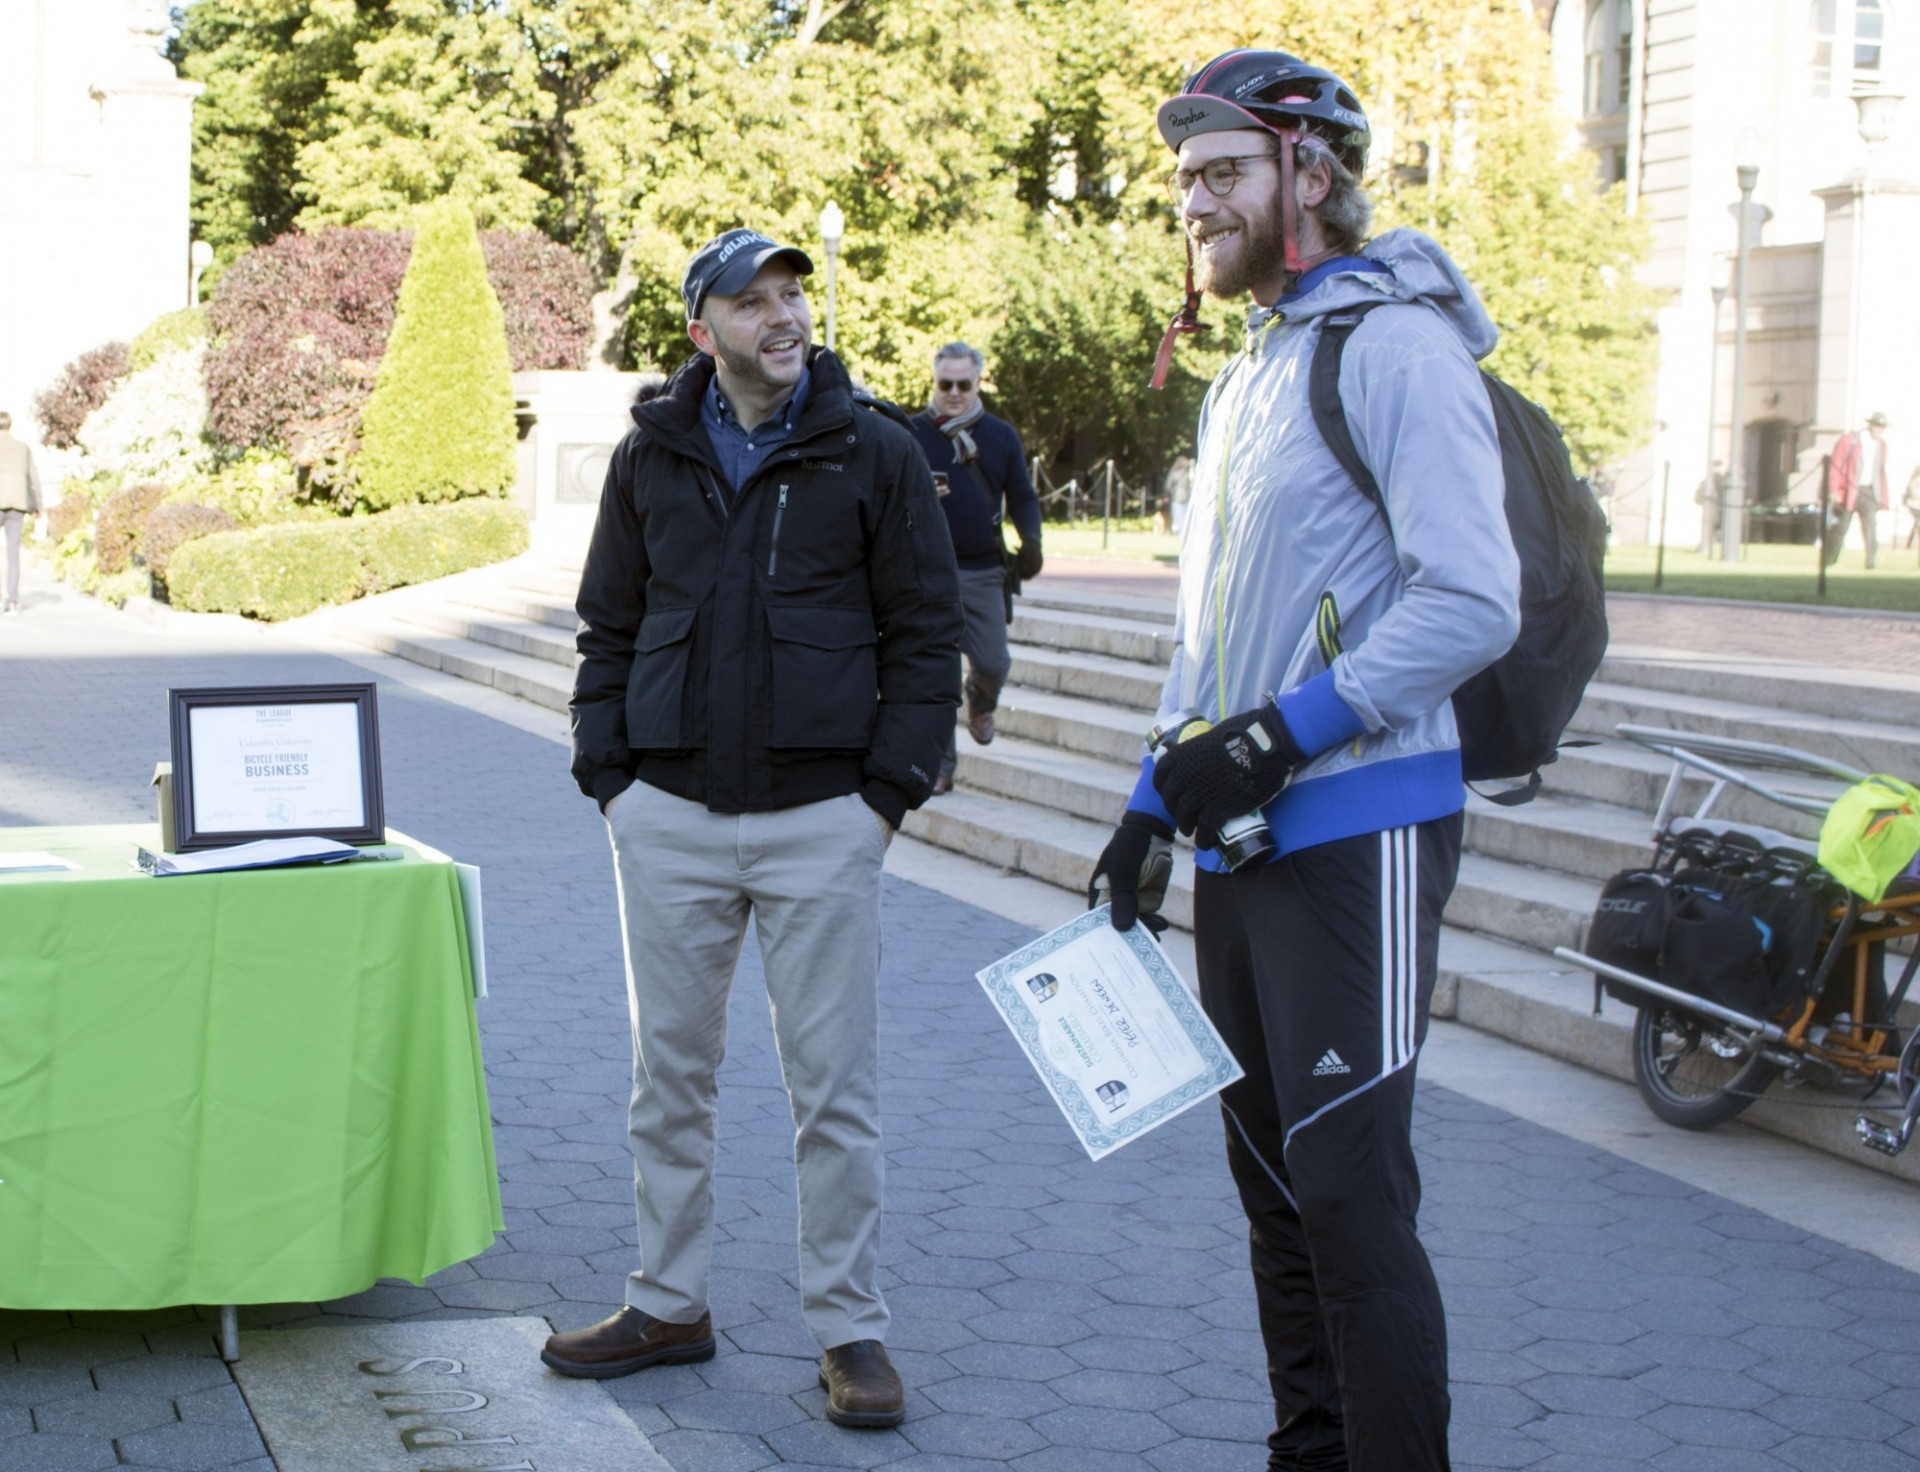 Peter Deneen talks about his bike commute after receiving a Sustainable Commuter award at the 2018 Bike Recognition Breakfast